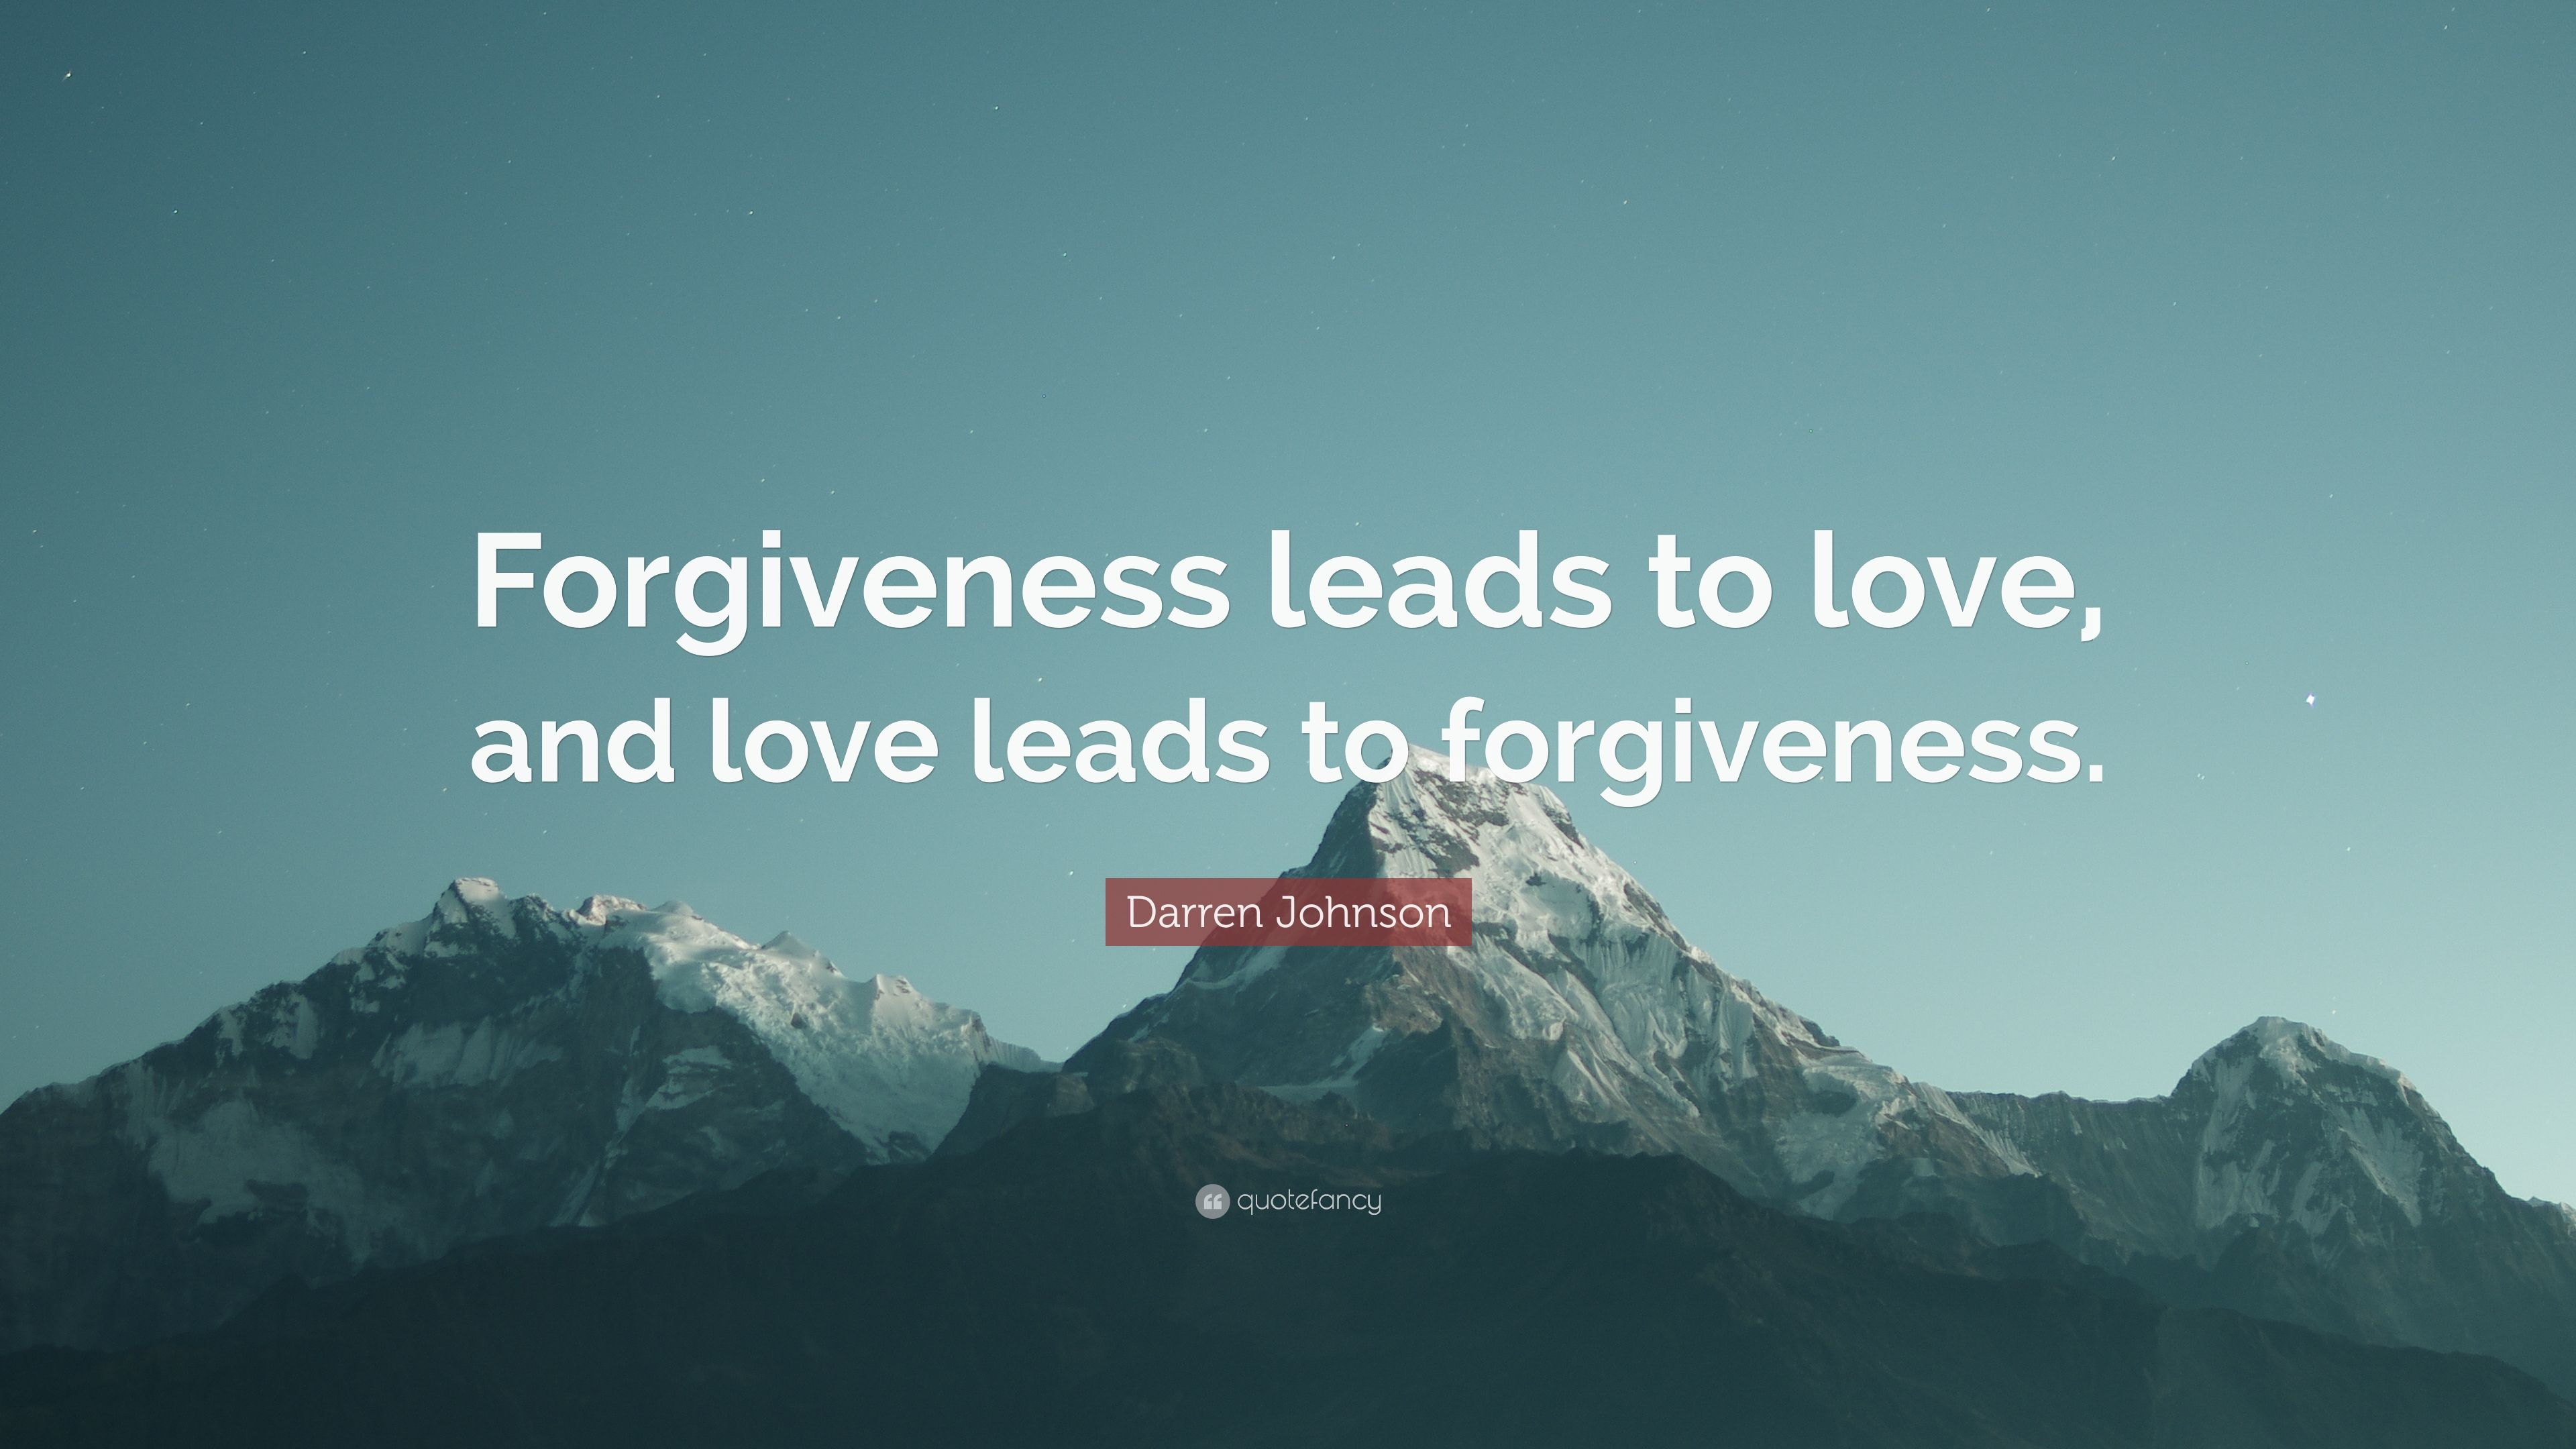 Attirant Darren Johnson Quote: U201cForgiveness Leads To Love, And Love Leads To  Forgiveness.